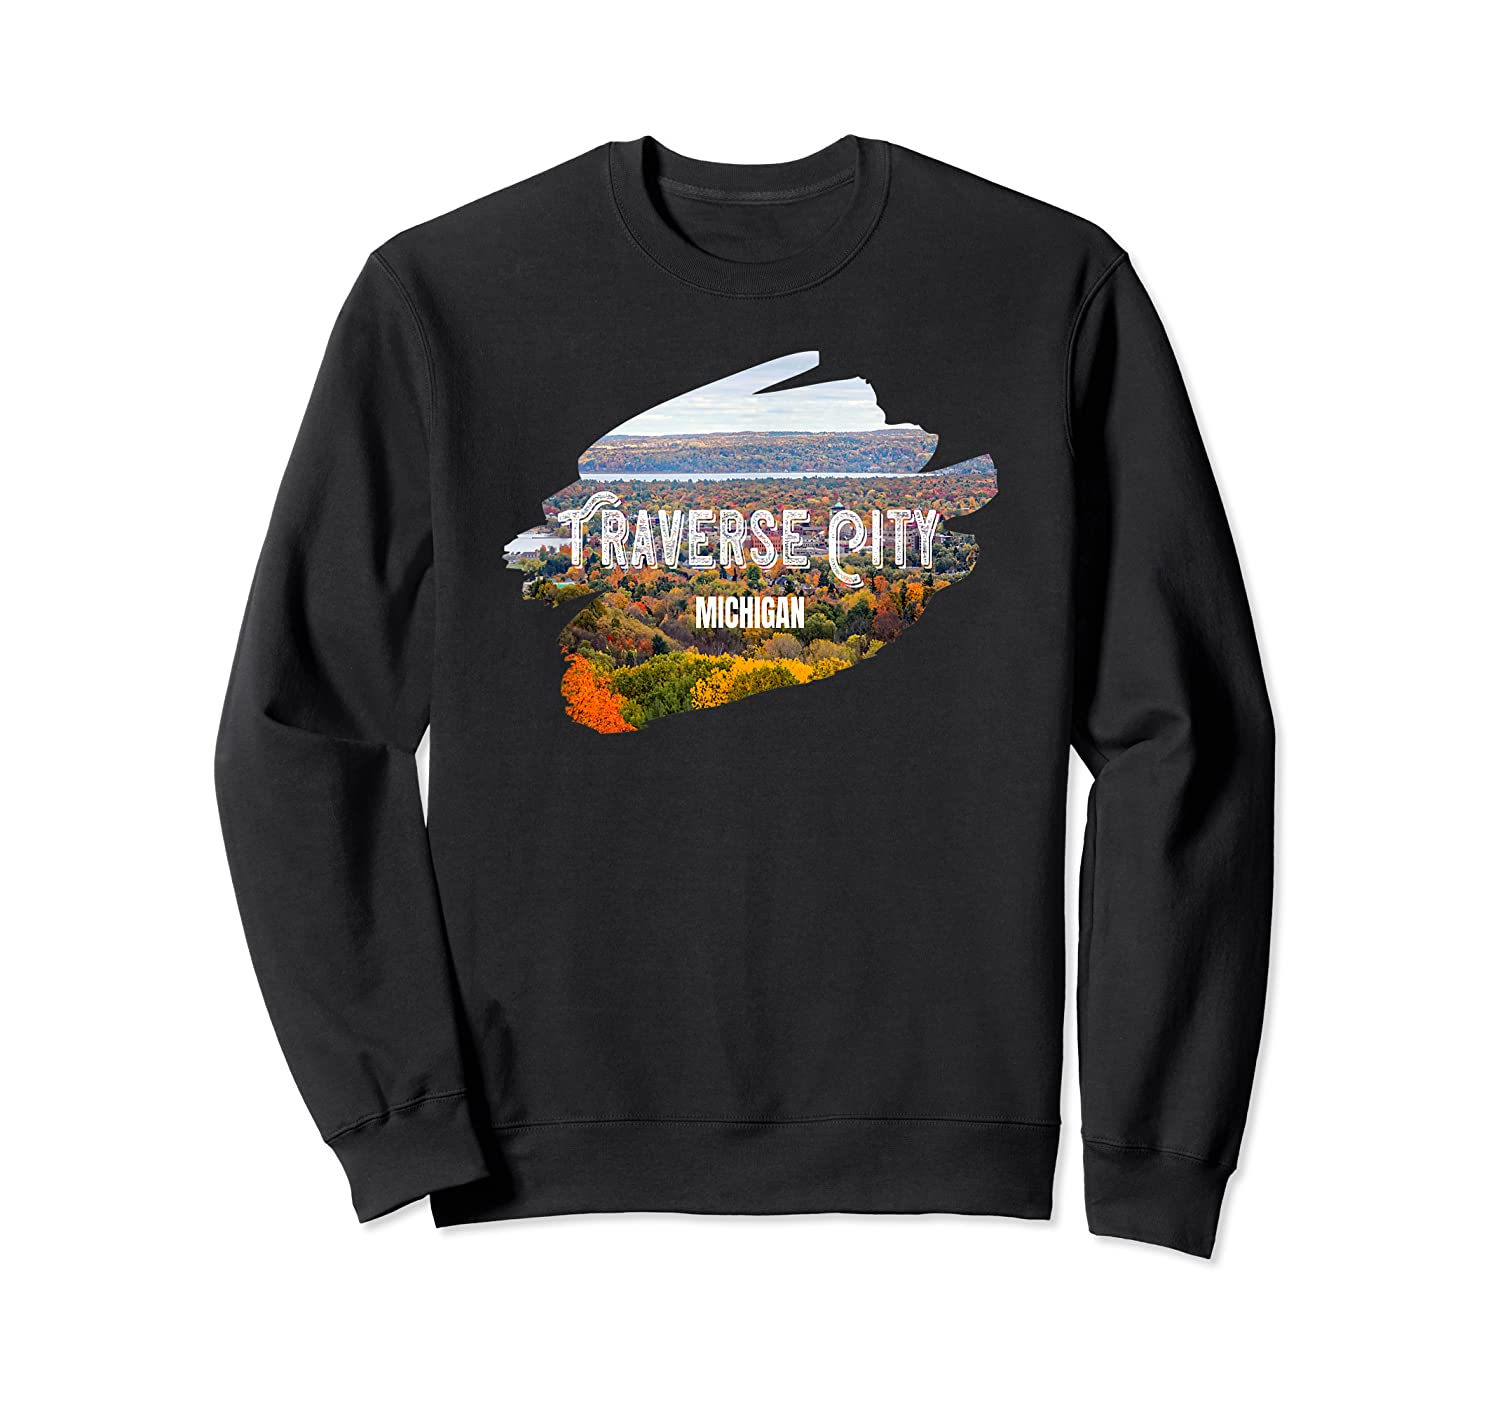 Traverse City Michigan Shirt For Midwest Gifts T Shirt Crewneck Sweater